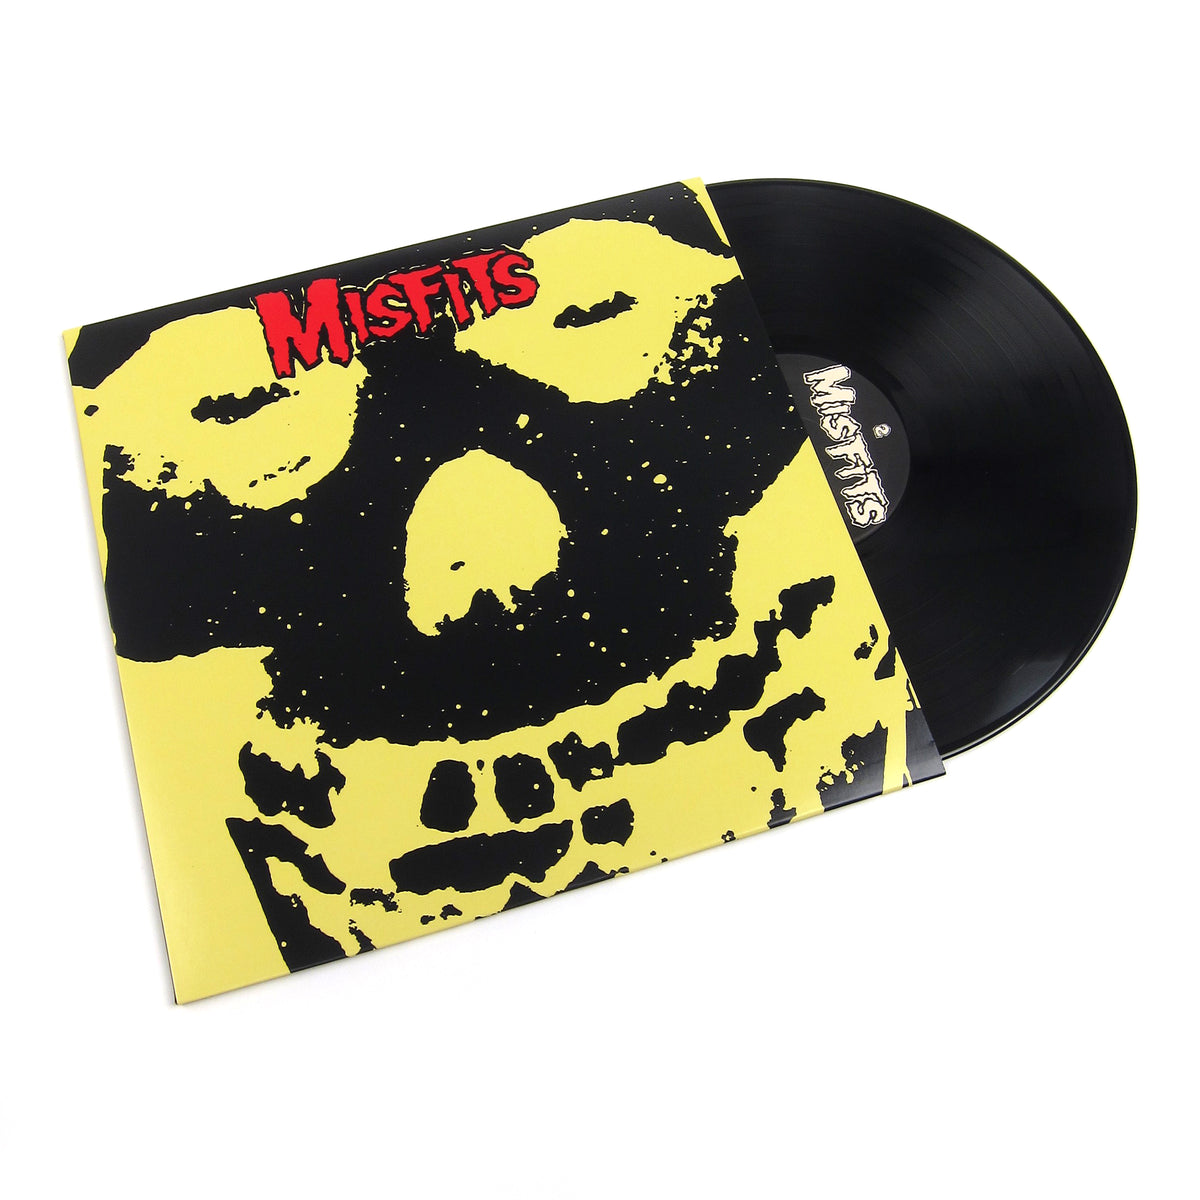 Misfits: Misfits (Collection I) Vinyl LP